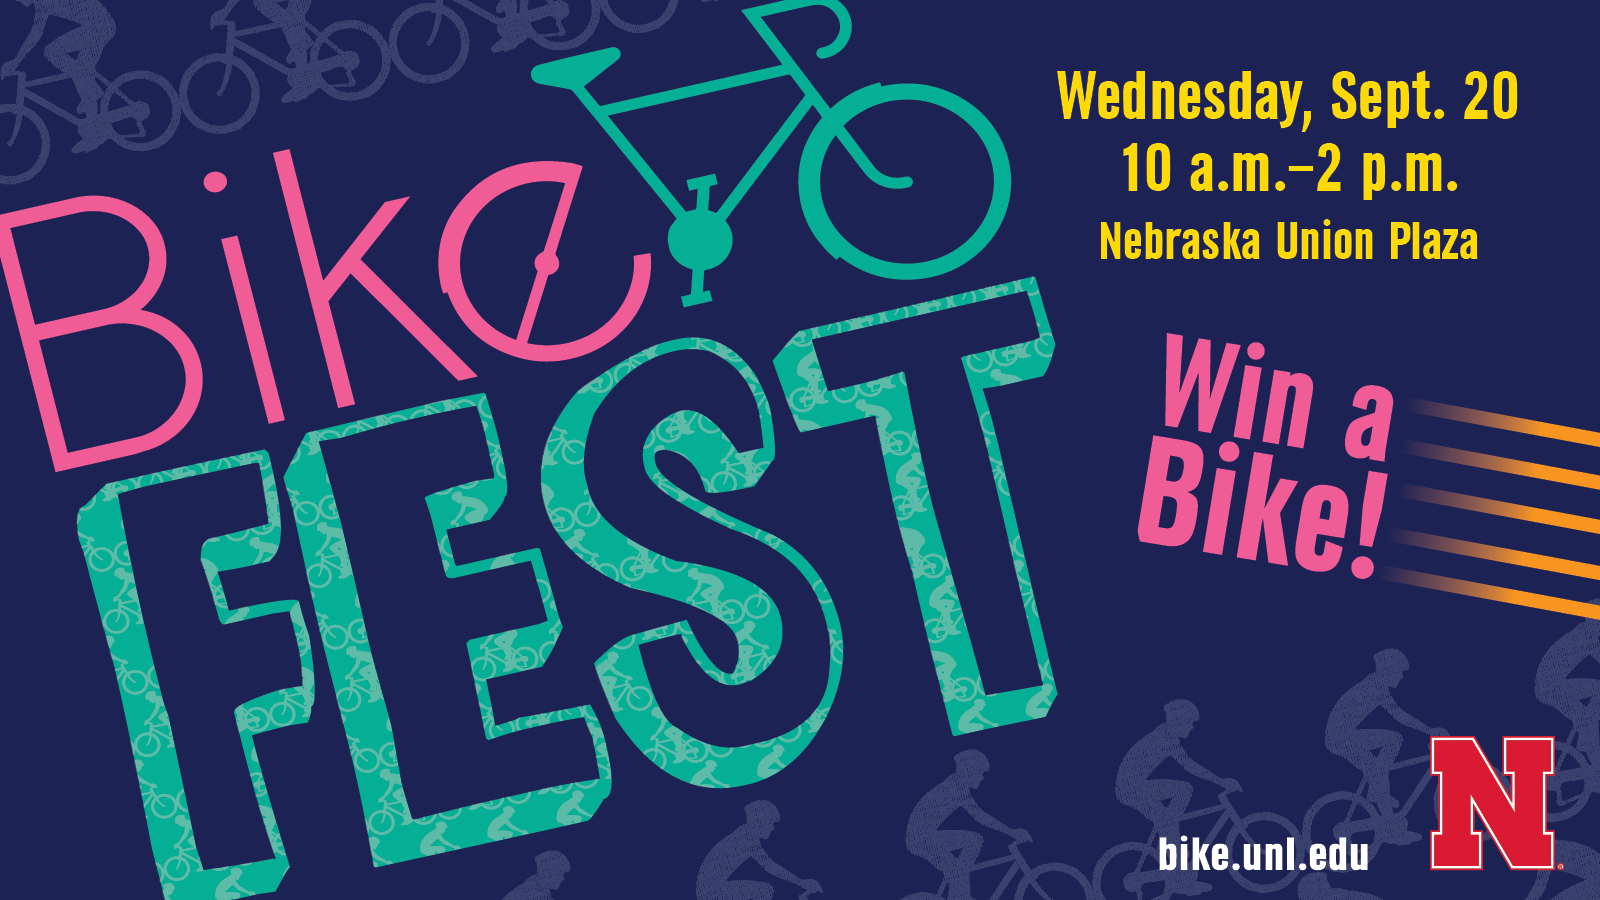 Bike Fest is an annual event promoting biking as a safe, practical and economical form of transportation.